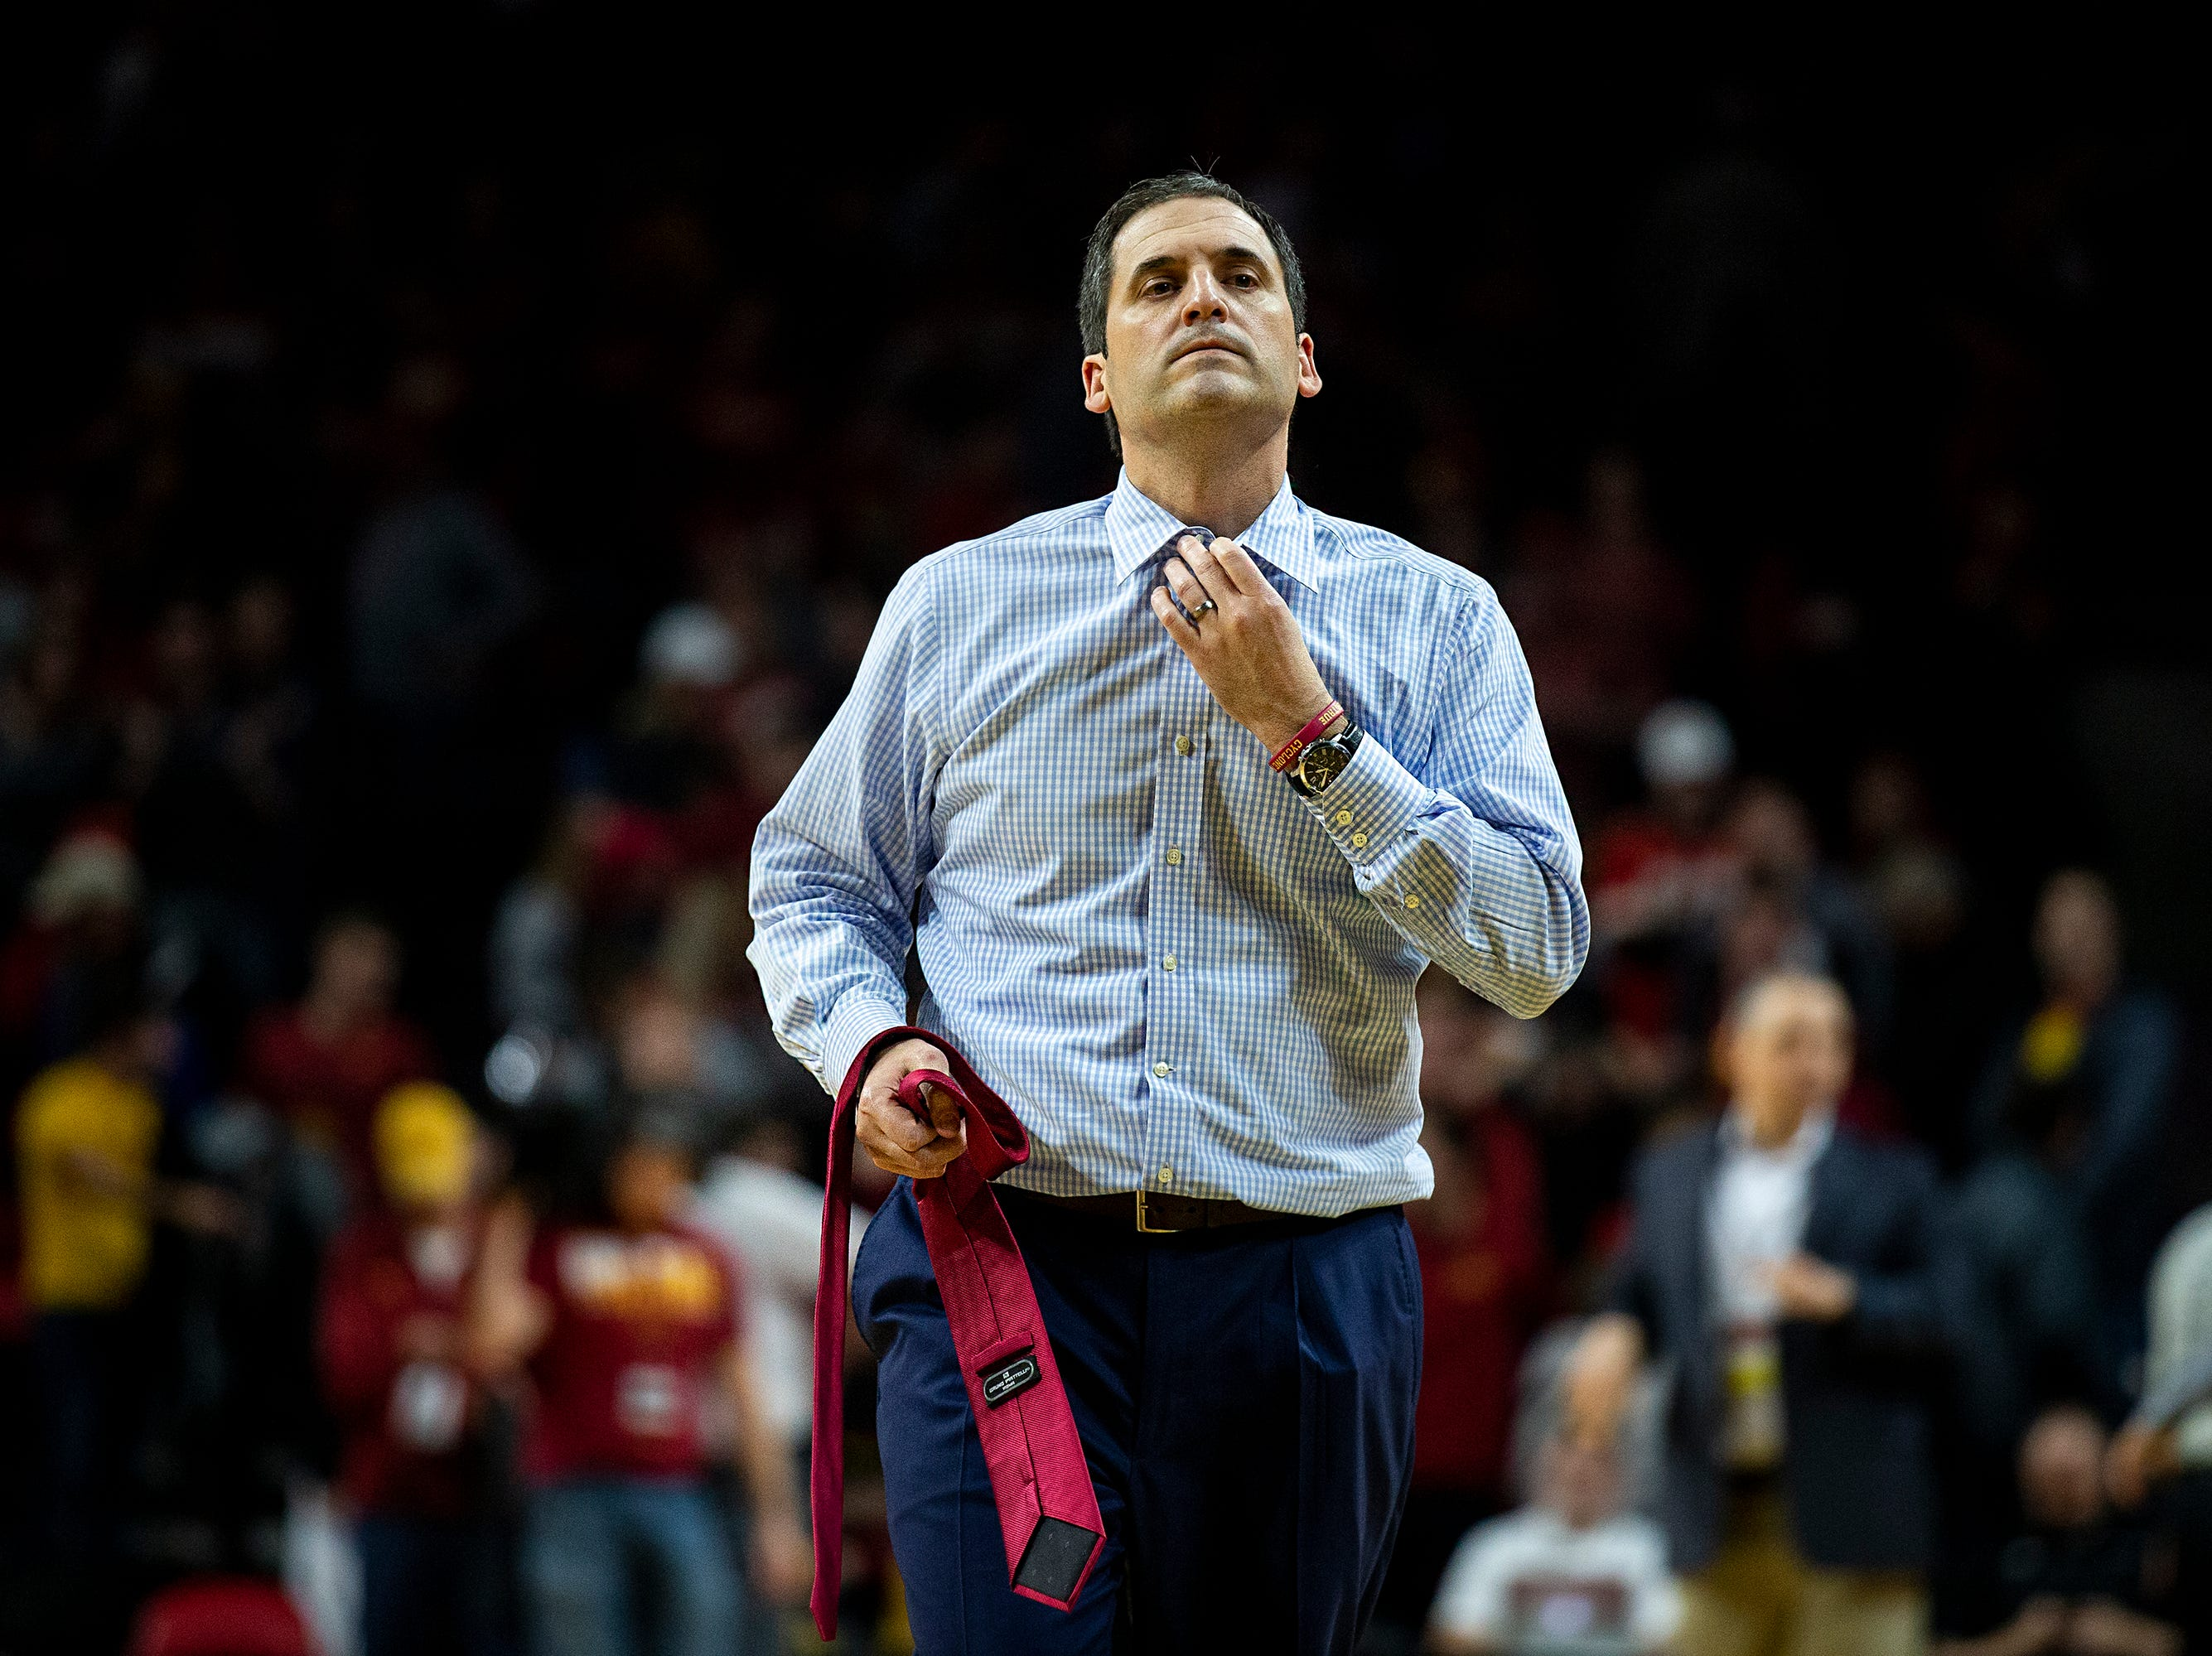 Iowa State Head Coach Steve Prohm takes of his tie as he leaves to court after the Cyclones loss to Kansas State on Saturday, Jan. 12, 2019, in Hilton Coliseum. The Cyclones lost to KSU by one point, 58-57.